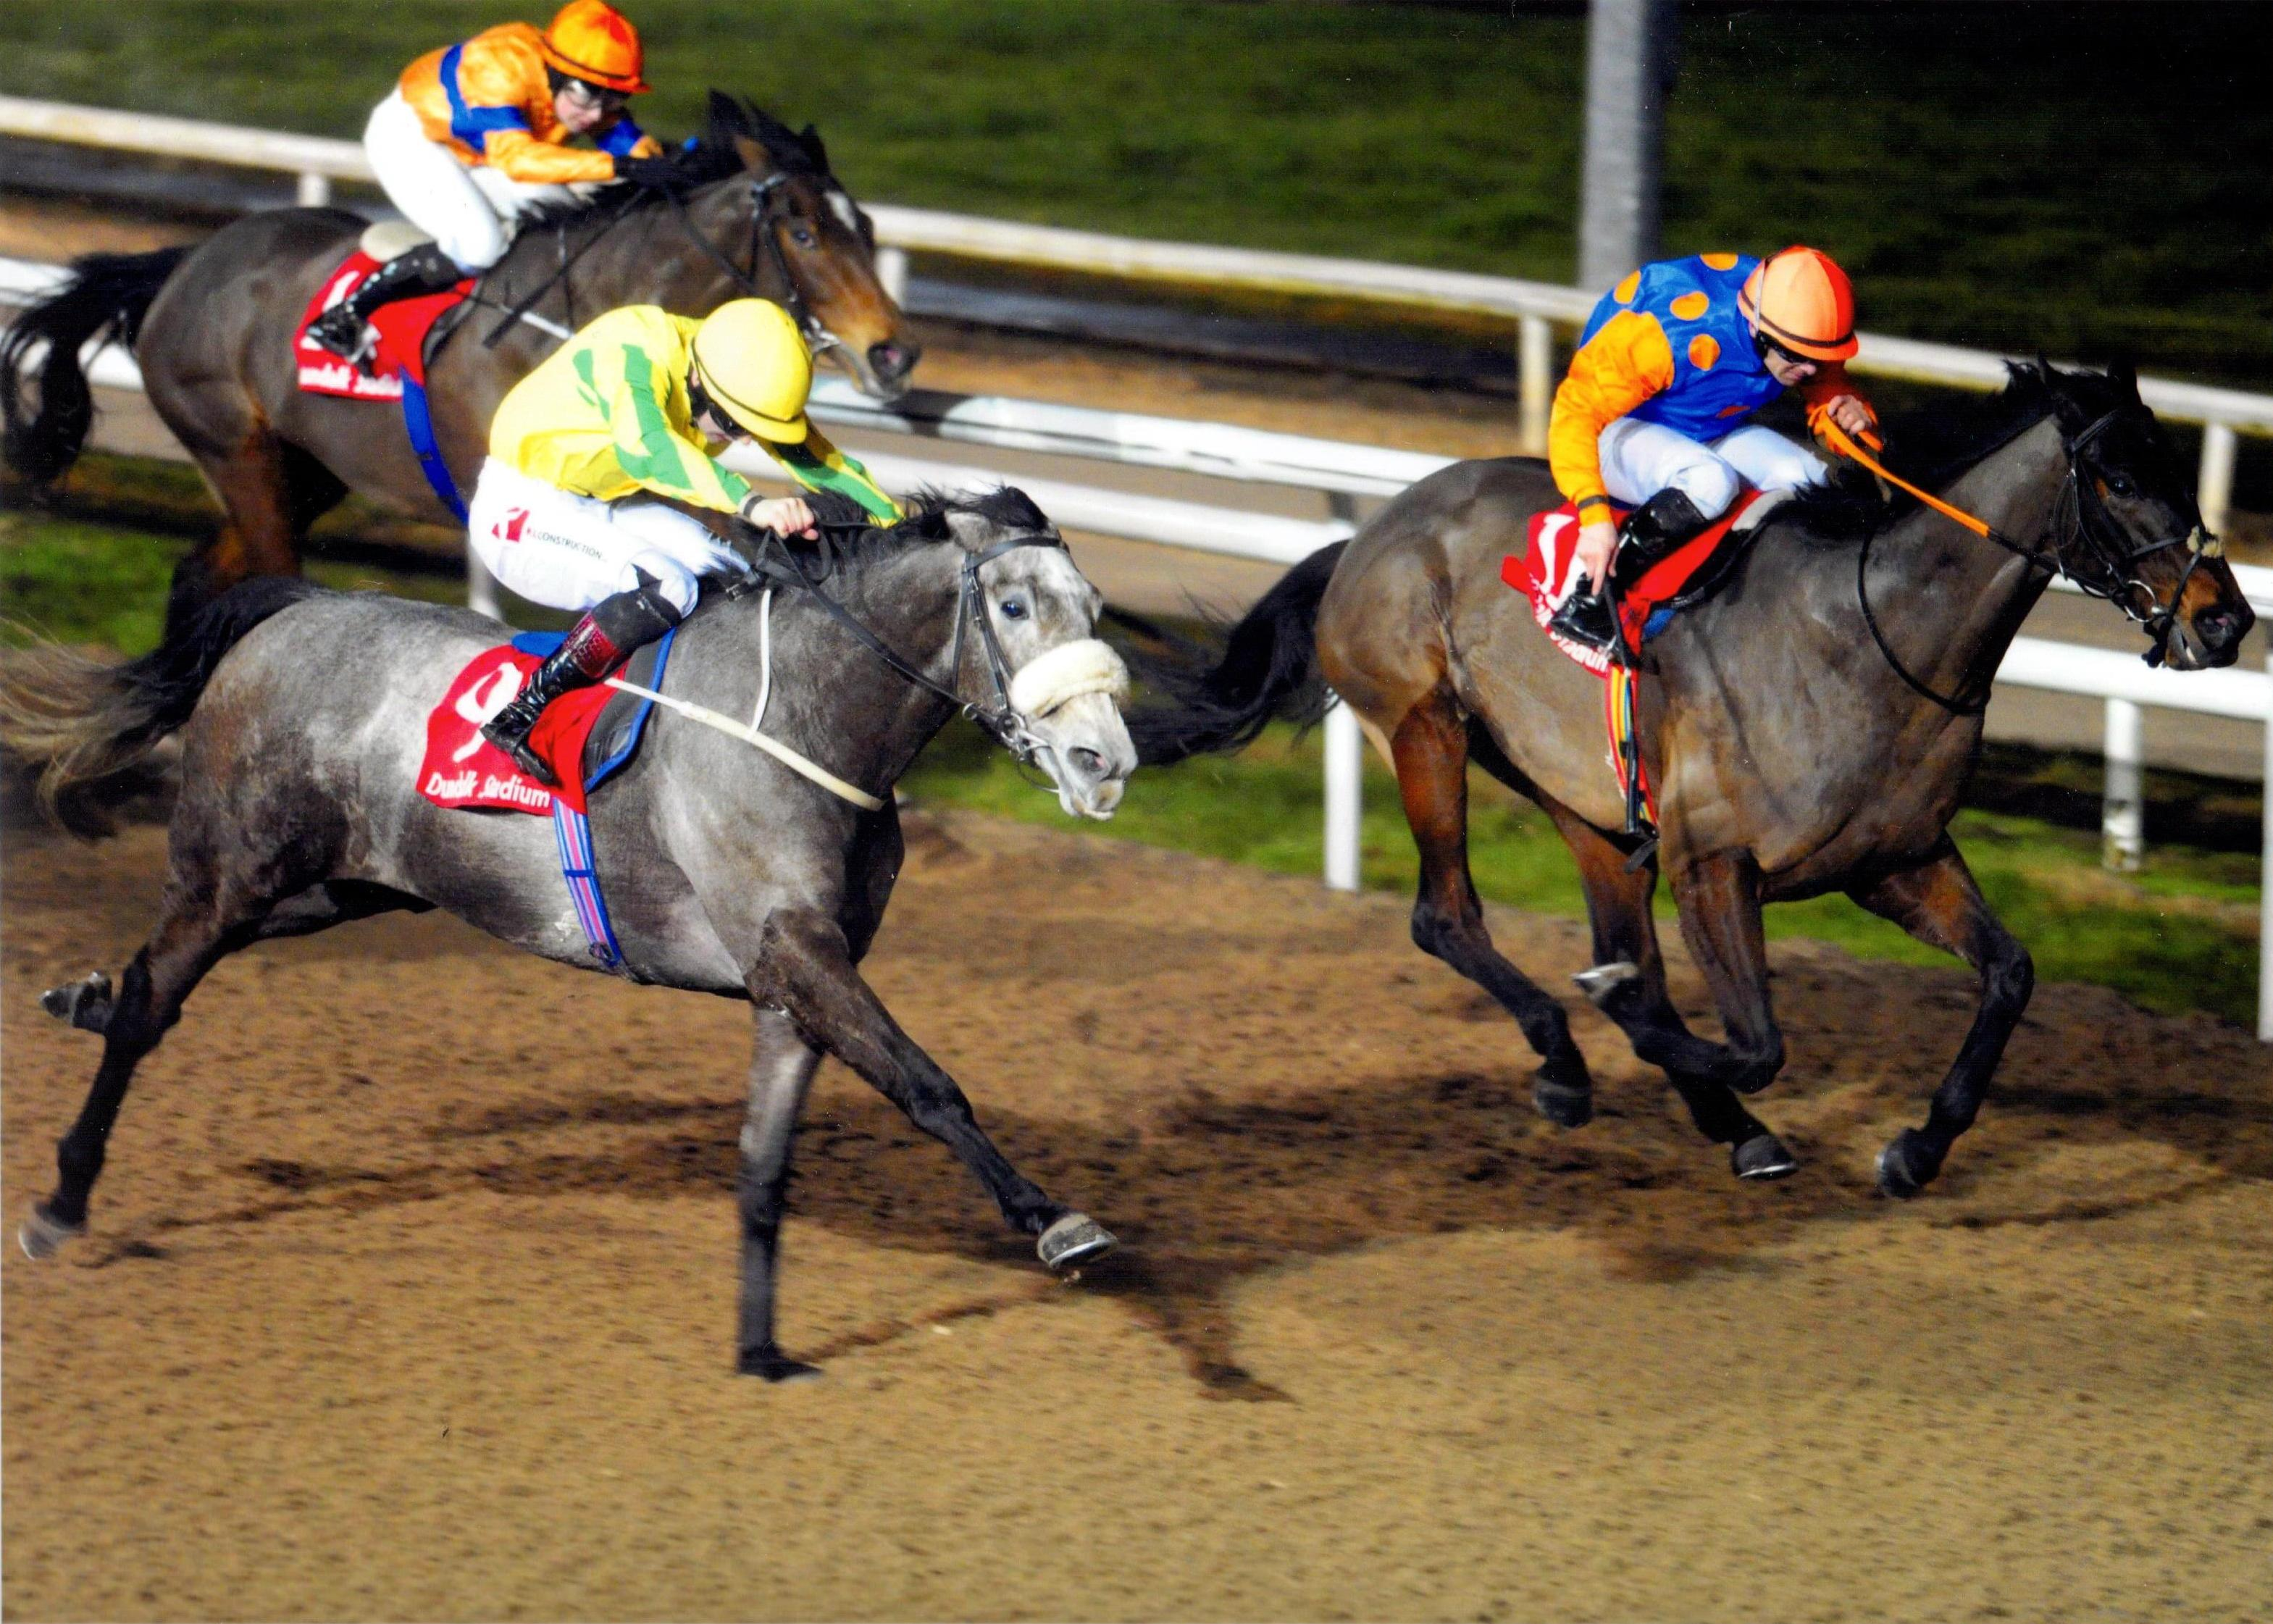 MAWANNY provides owner David Spratt with a double at Dundalk 6th